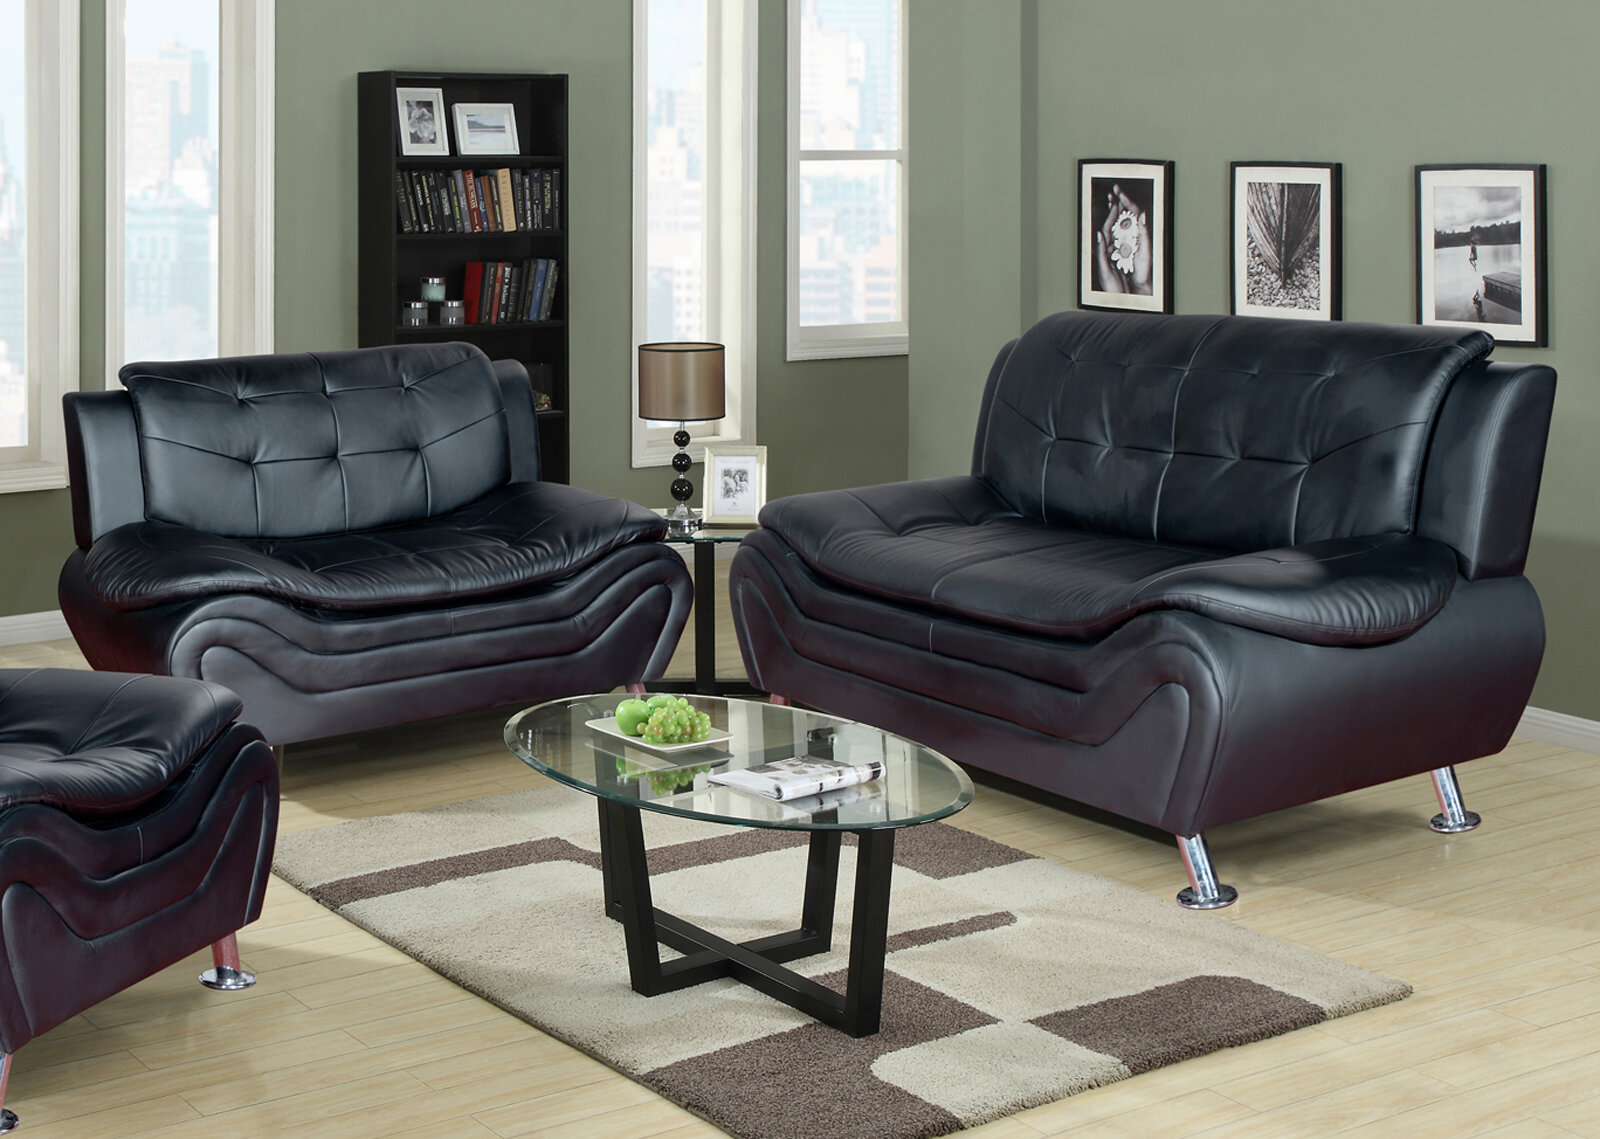 stratton and co livings sofa chocolate set piece room cambridge p loveseat living sets